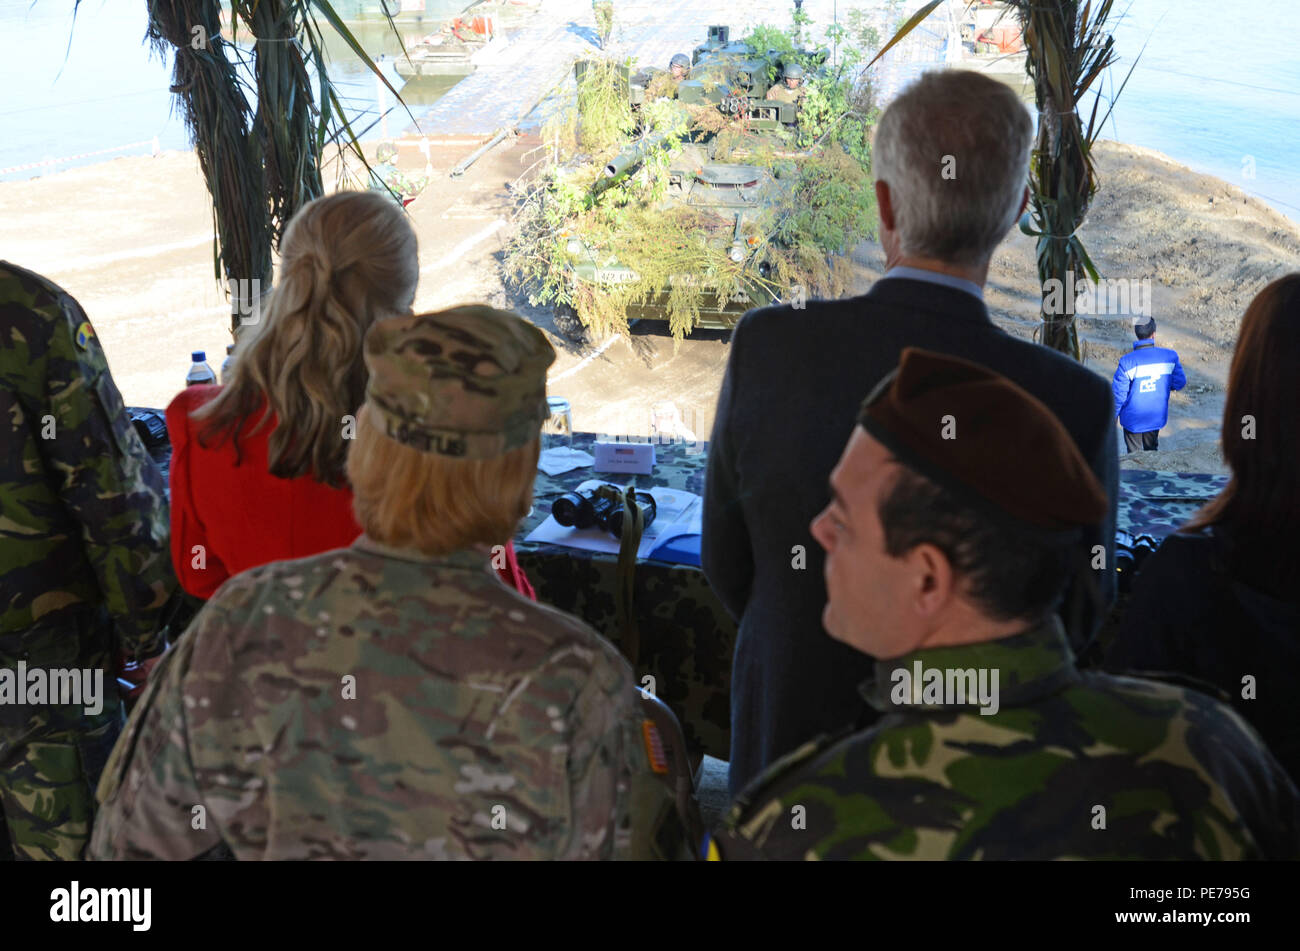 U.S. and Romanian Soldiers and key leaders watch as U.S. military vehicles cross the three-lane floating bridge during Exercise Dragoon Crossing – Romania near Arad, Romania, Oct. 24-26, 2015. Dragoon Crossing – Romania is a strengthening of NATO's persistent presence in the region in support of Operation Atlantic Resolve.  (U.S. Army photo by Staff Sgt. Steven M. Colvin/10th Press Camp Headquarters) - Stock Image